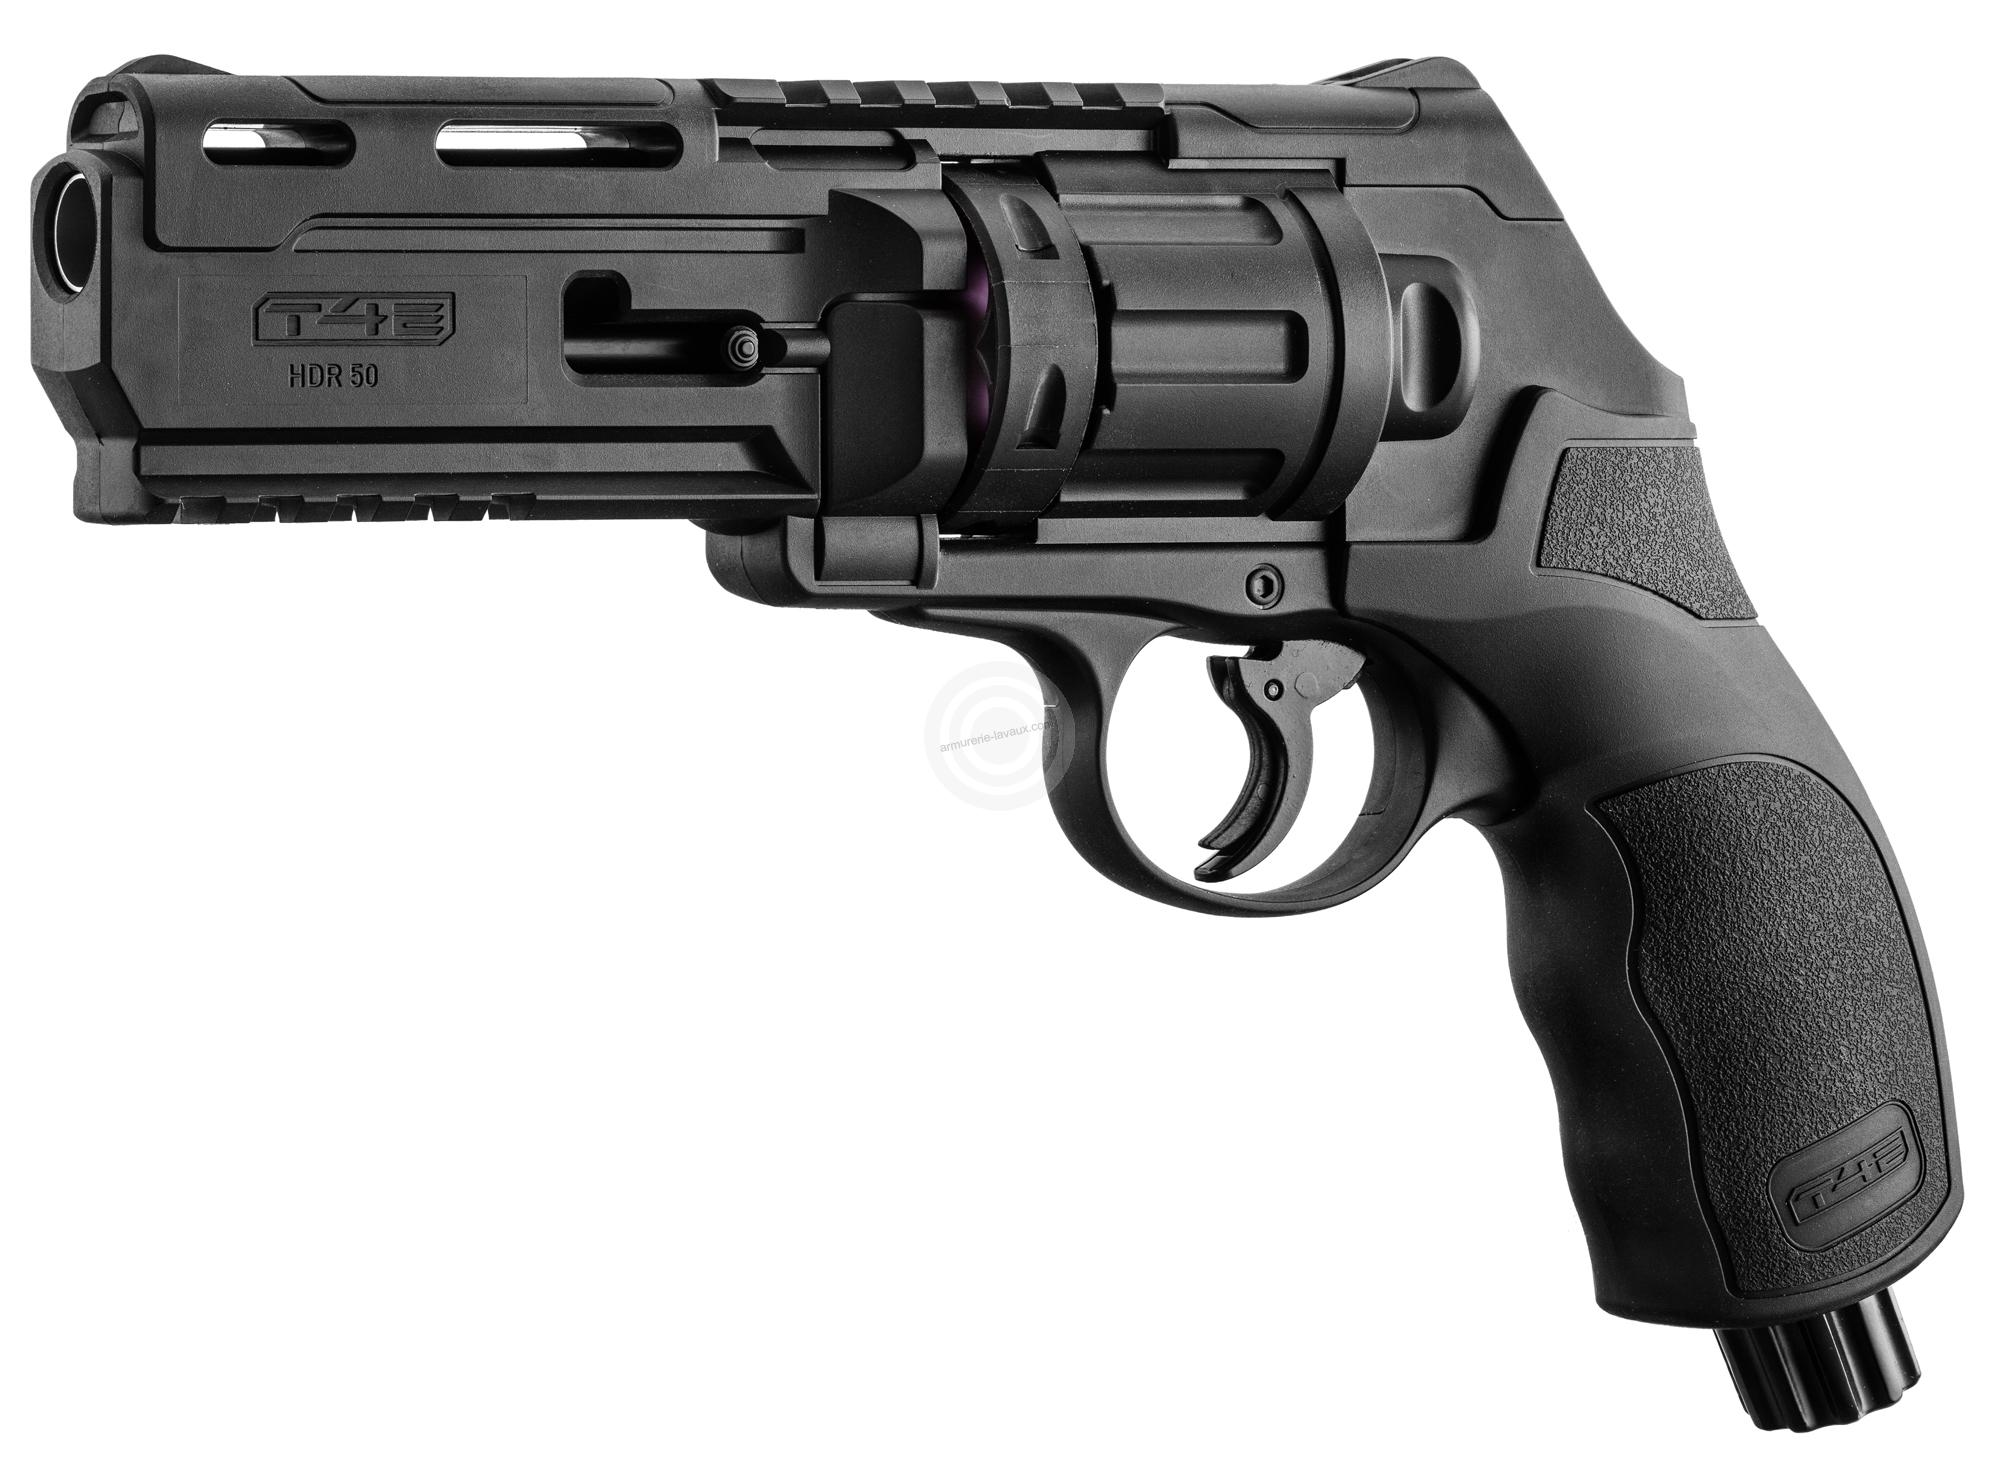 Revolver 6 coups WALTHER T4E HDR 50 cal.50 (11 joules) ''UMAREX''